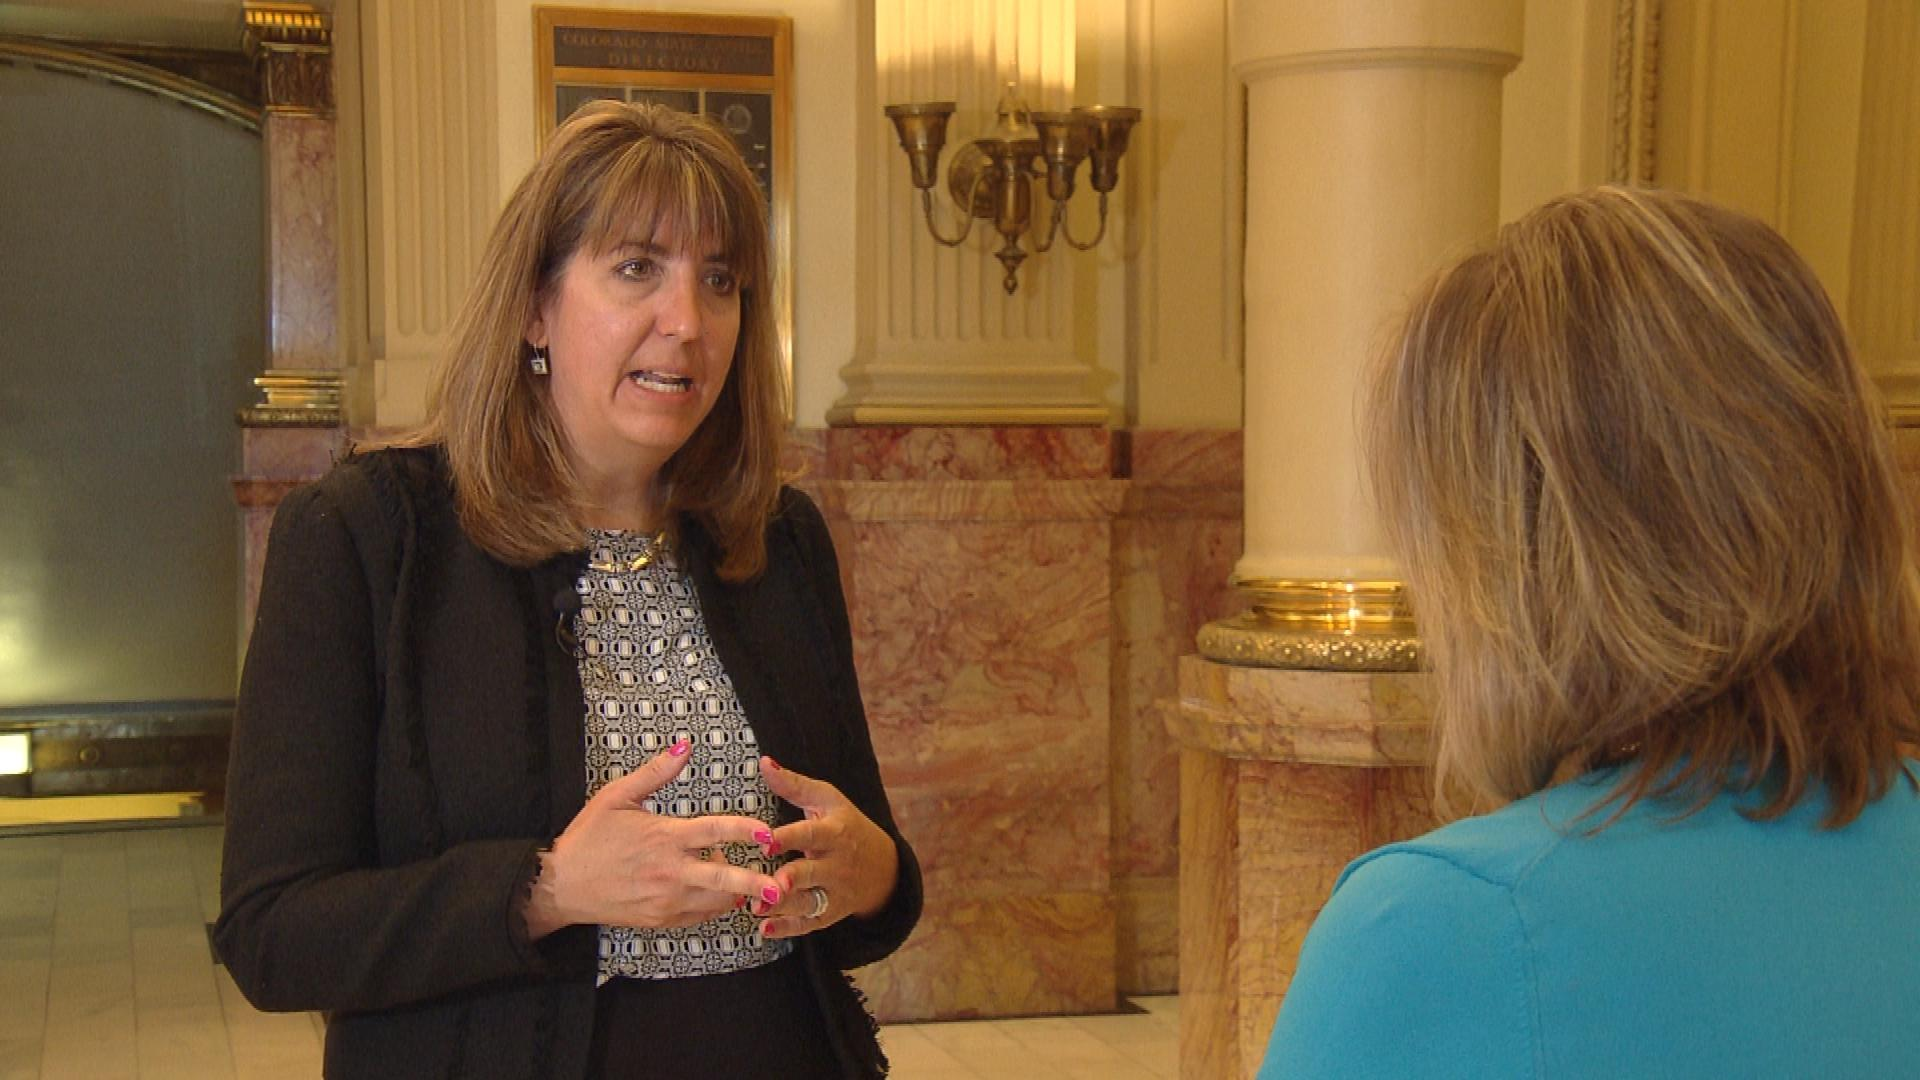 Beth Leon with the Initiative for Inclusive Higher Education is interviewed by CBS4's Shaun Boyd (credit; CBS)